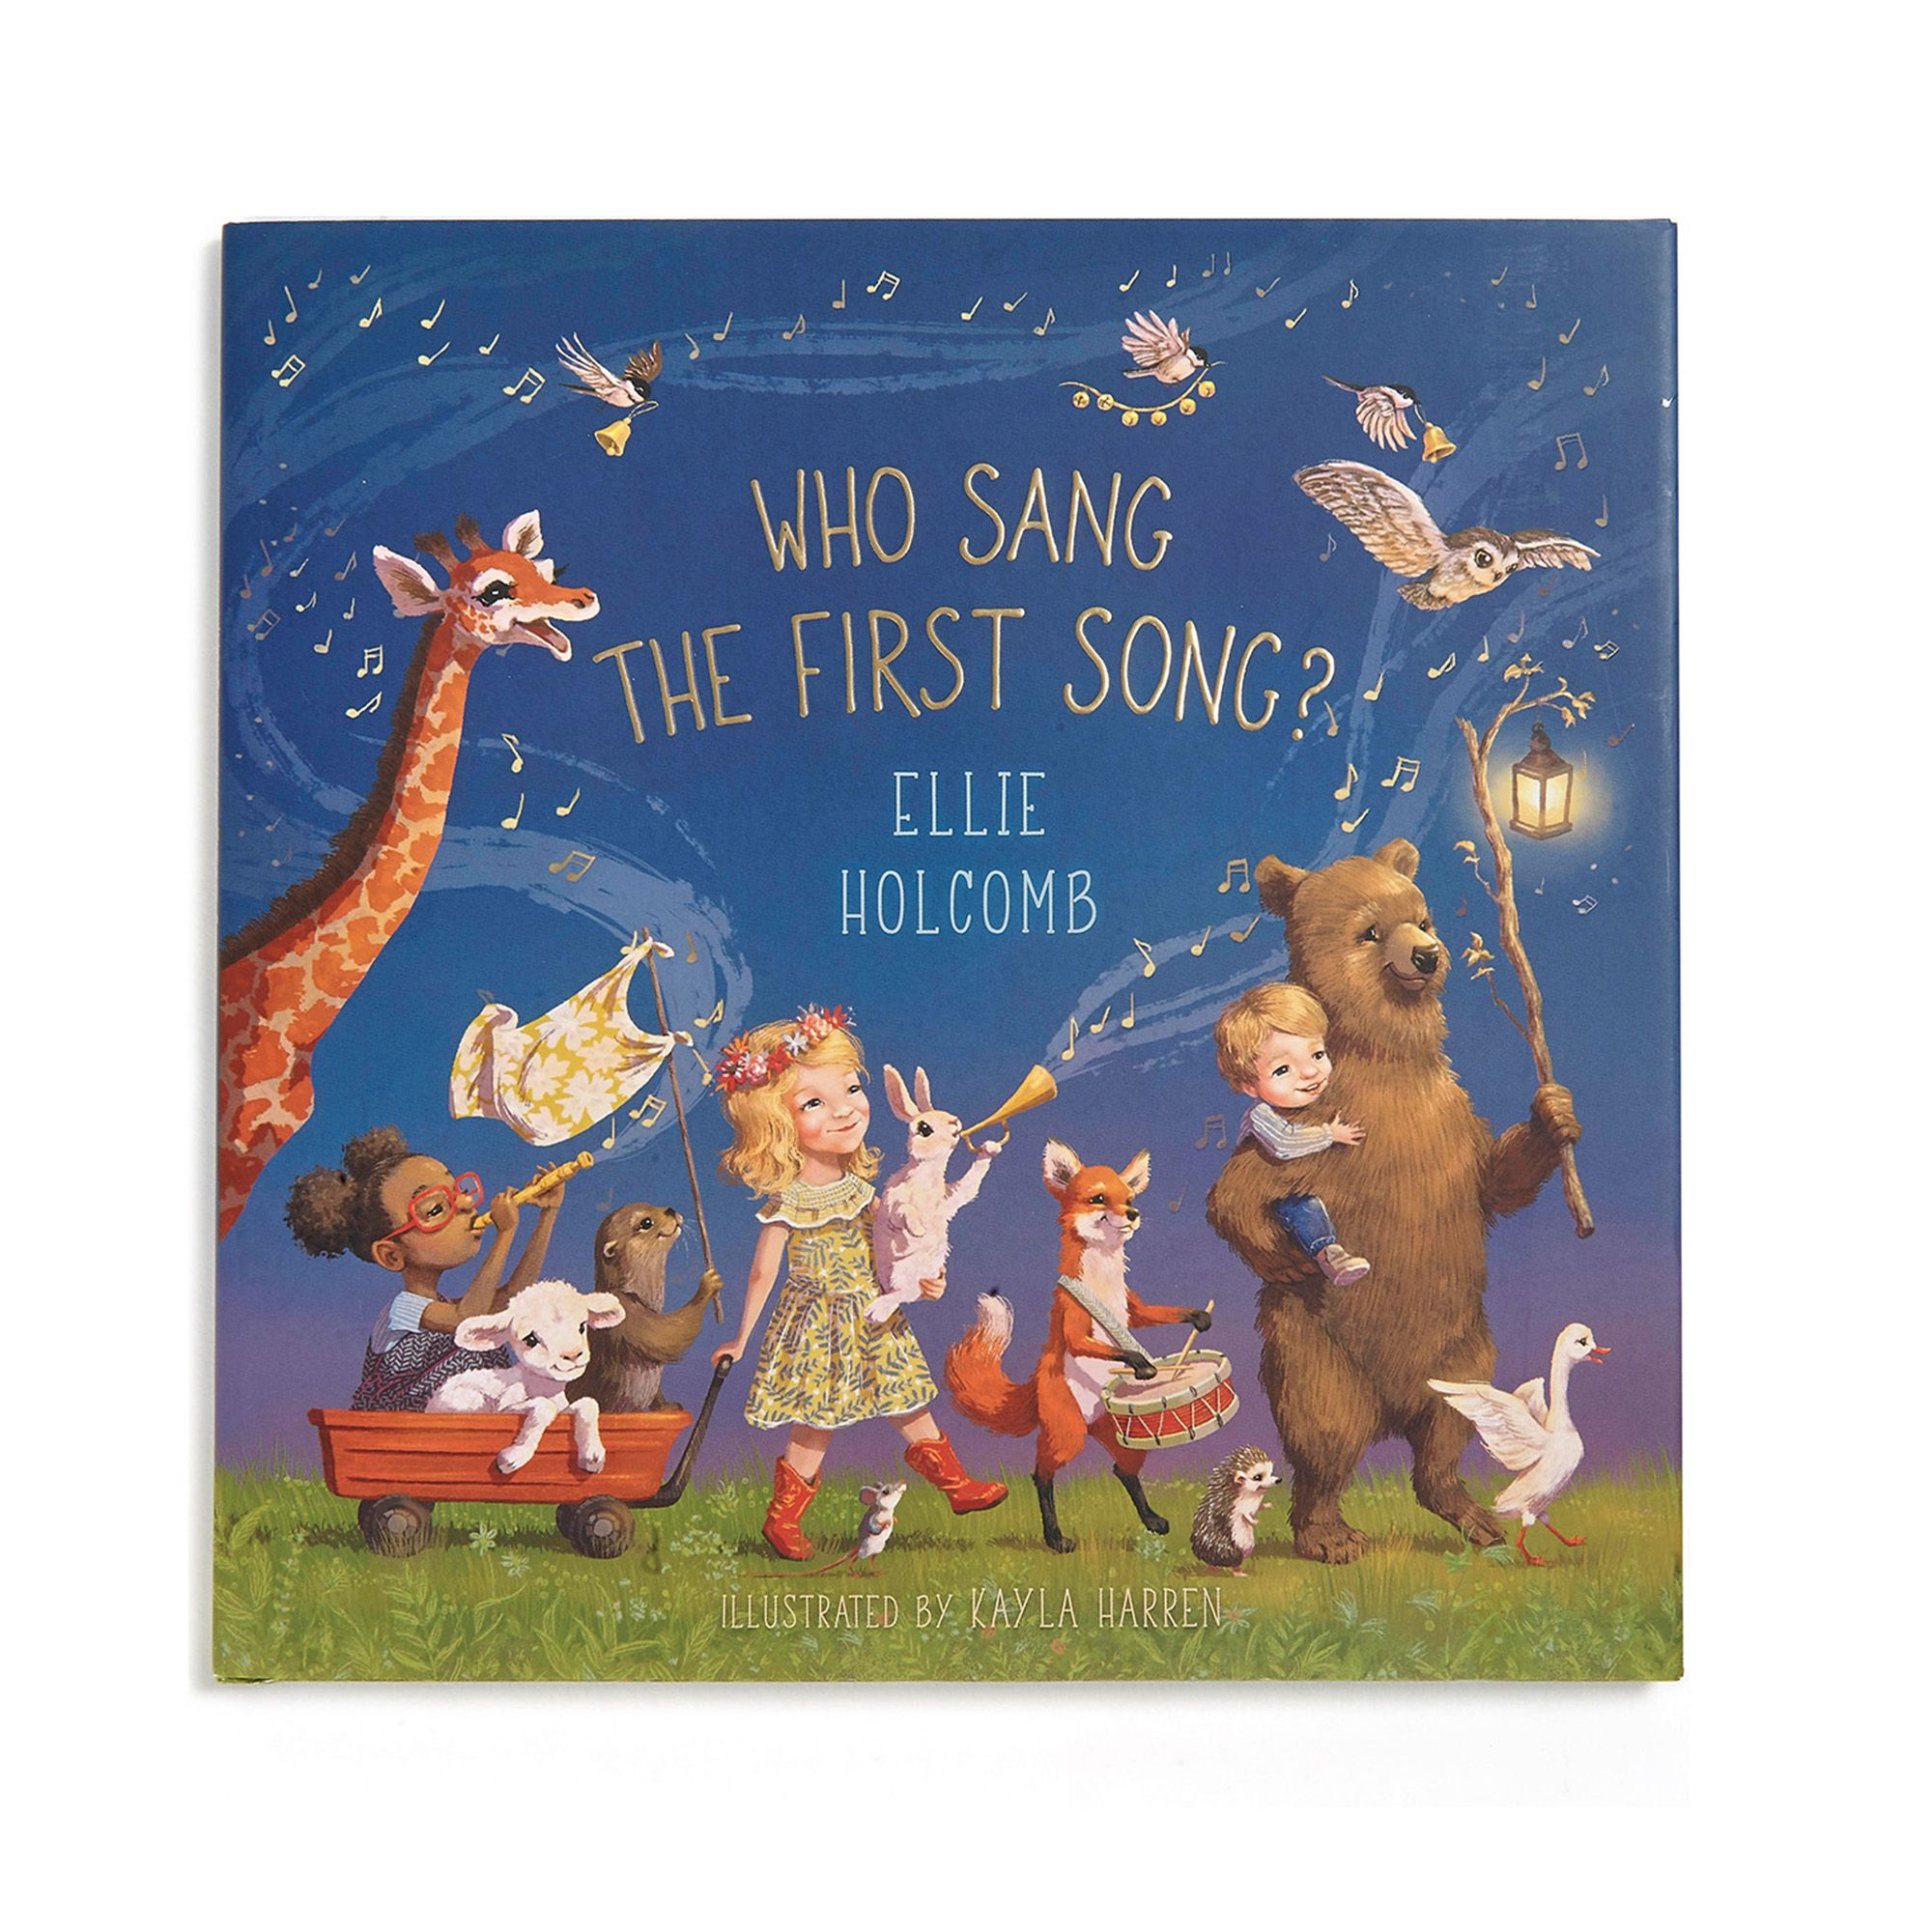 Who Sang the First Song? - B&H Publishing